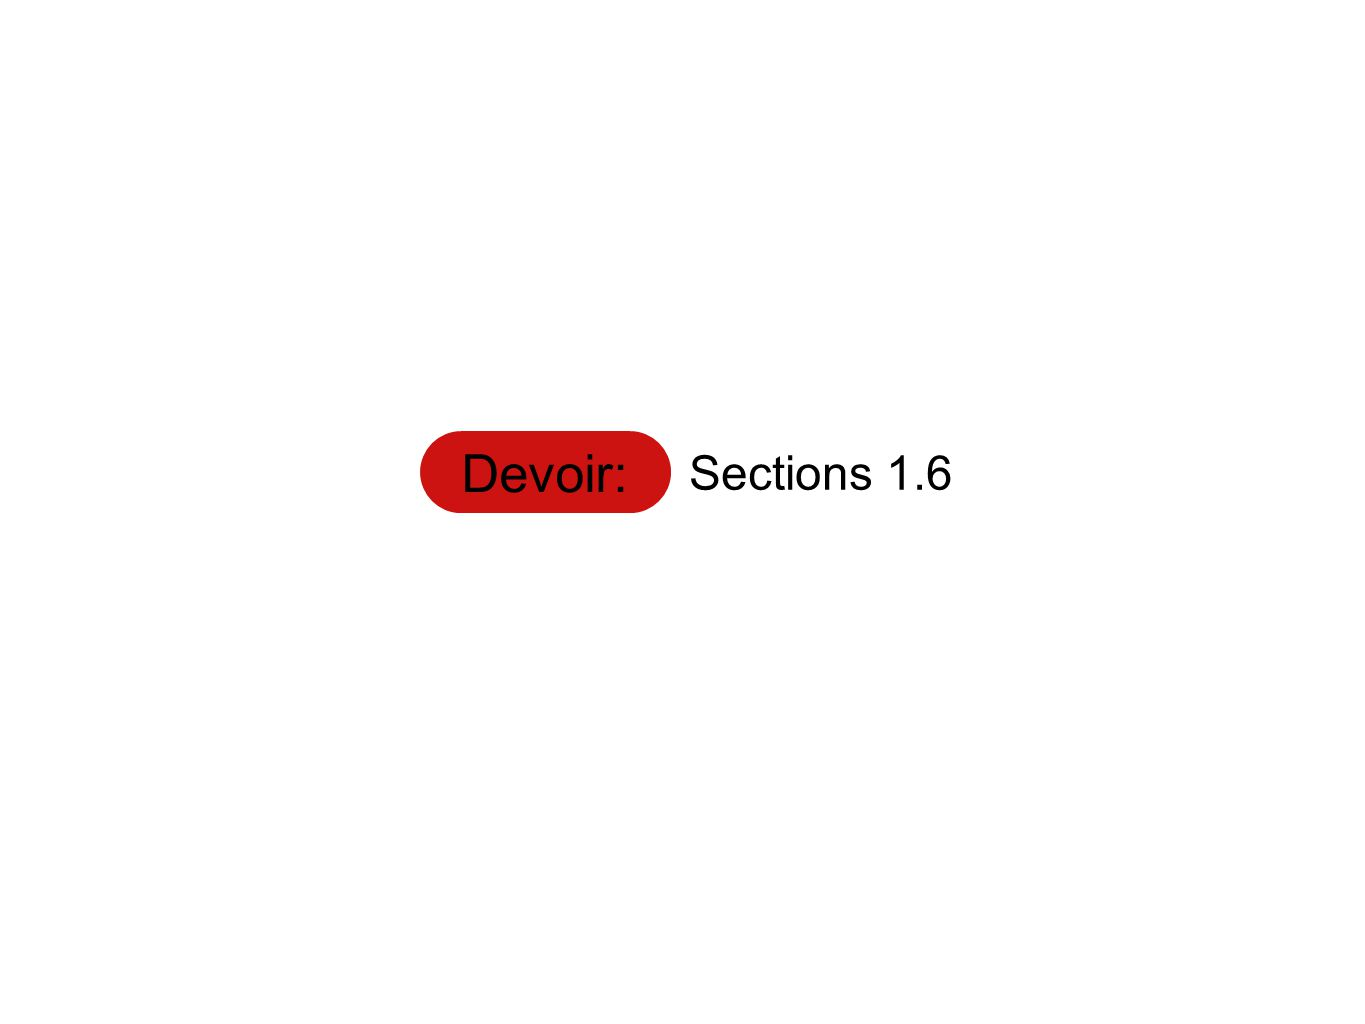 Devoir: Sections 1.6